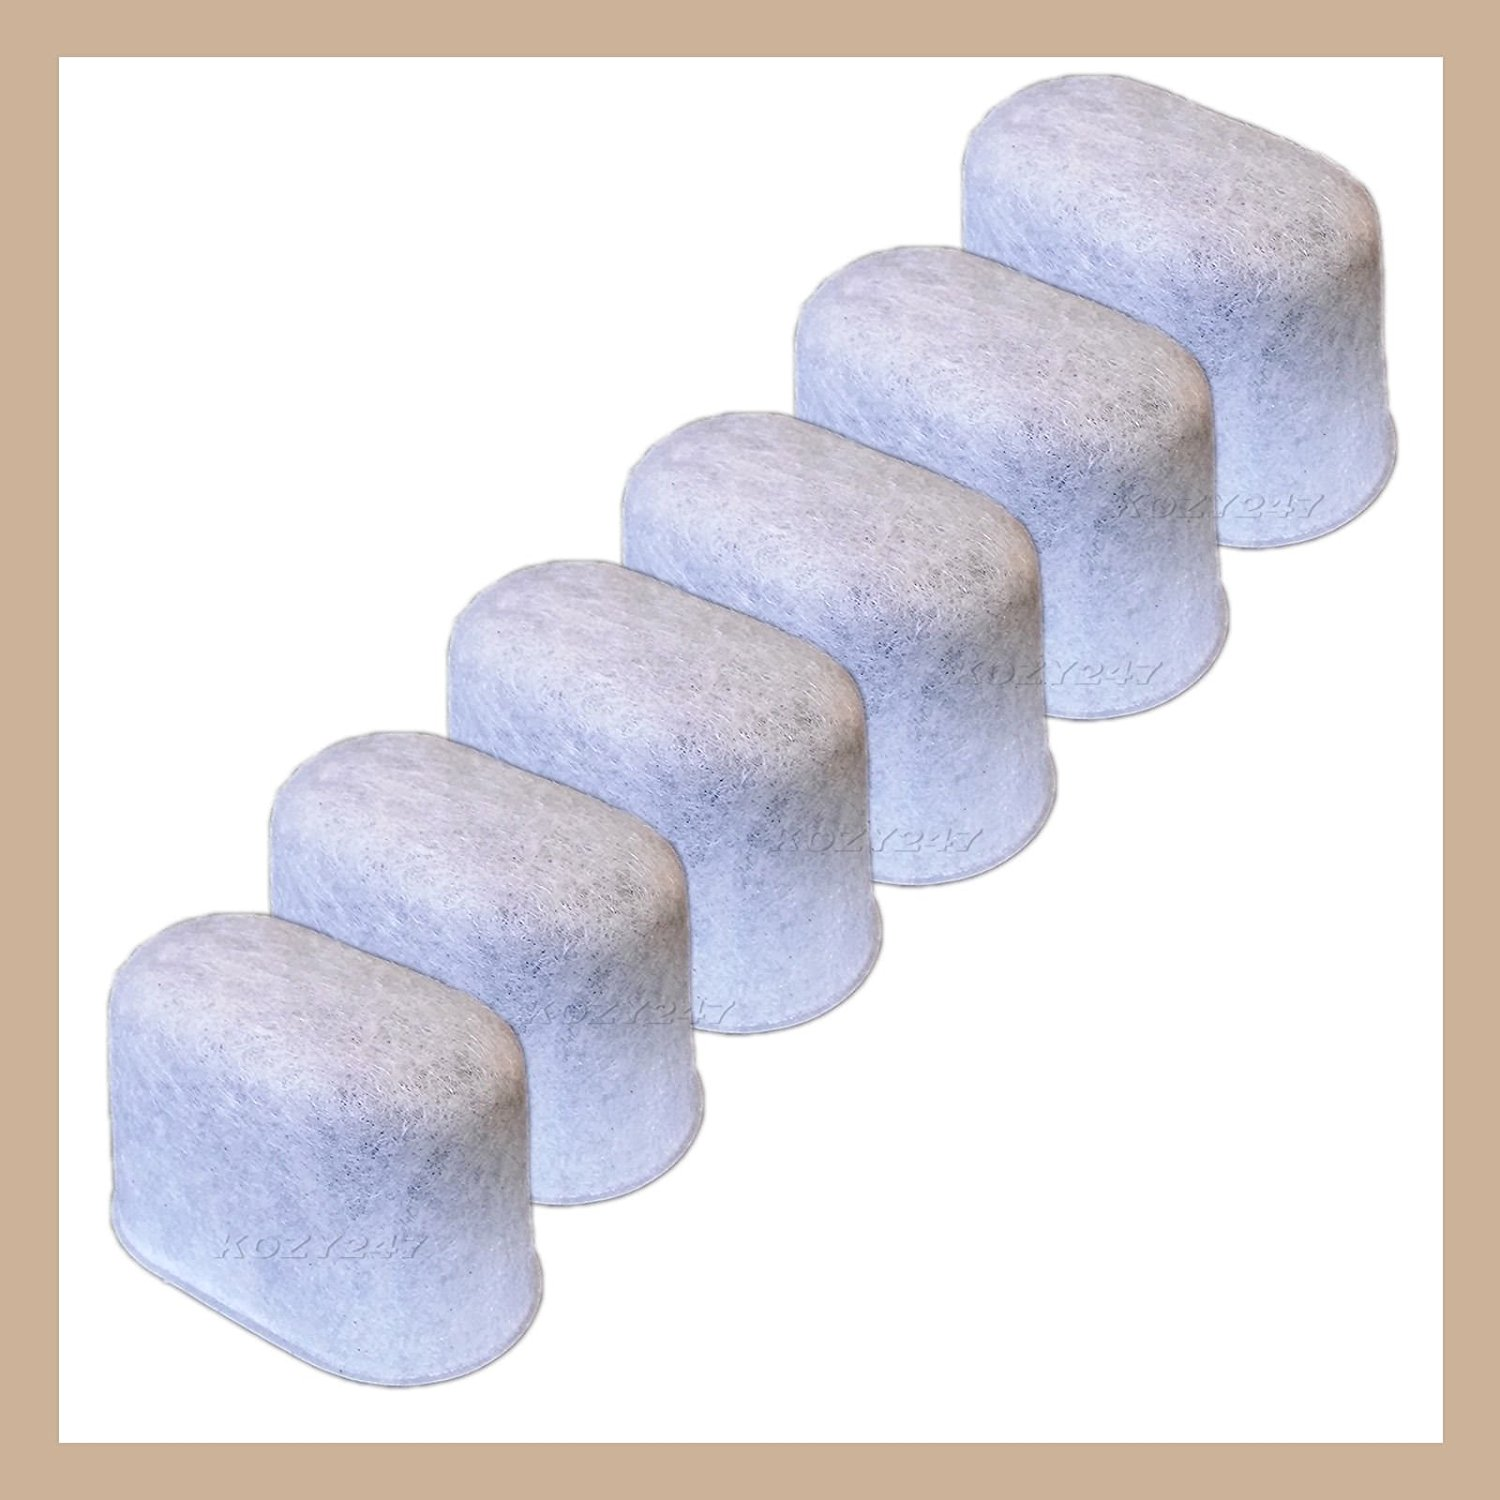 6 Pack Charcoal Water Filter Replacement 05073 Fits Keurig 2.0 Coffee Makers